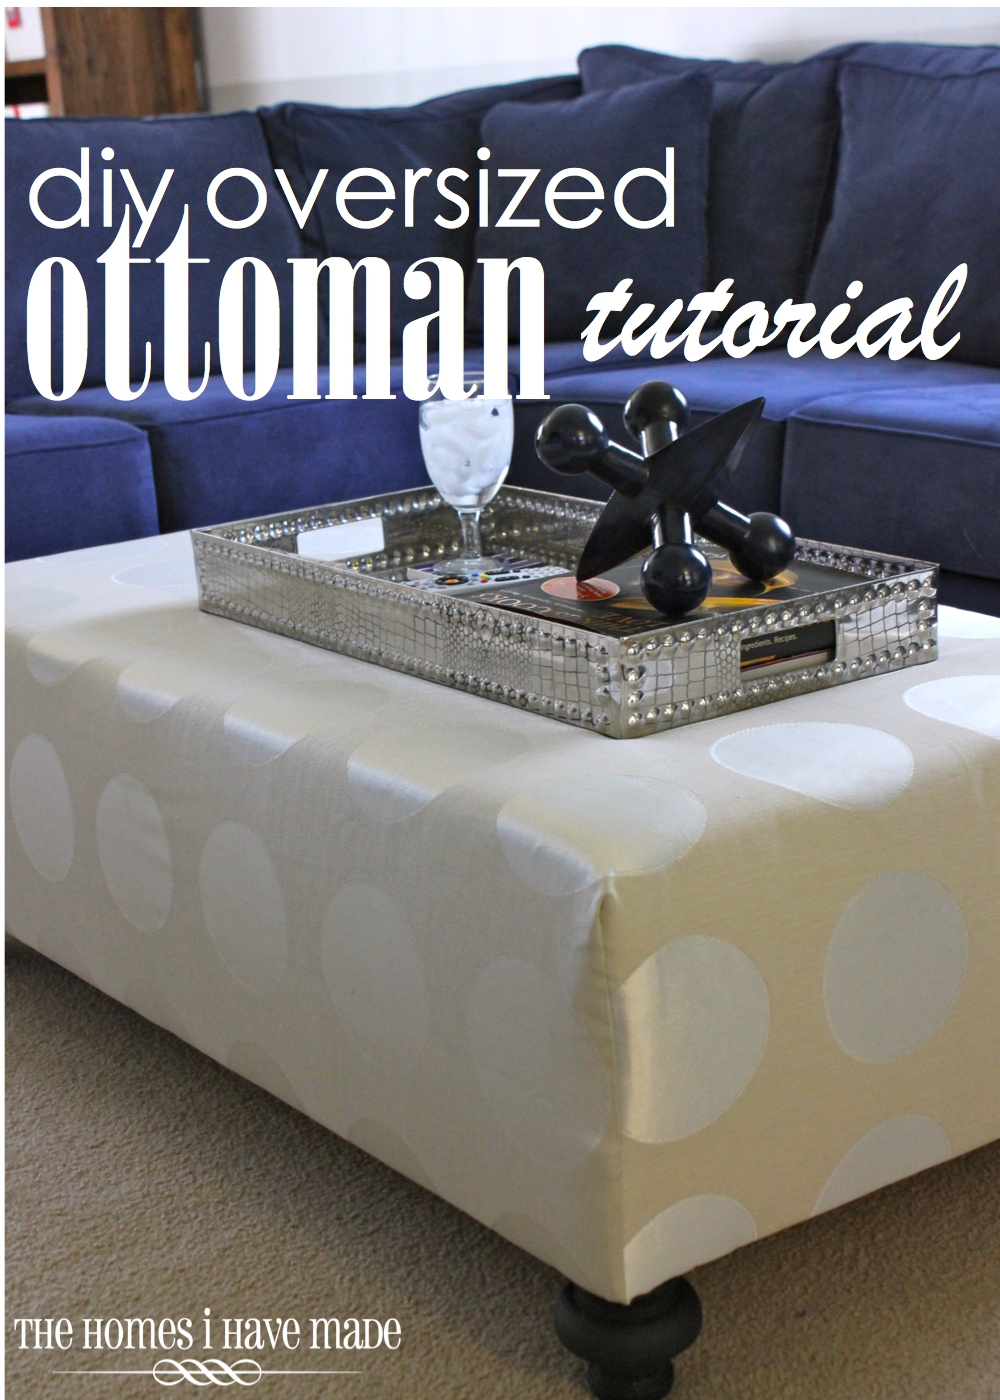 Hope You All Had A Fantastic Thanksgiving And Weekend Of Holiday Relaxing  And Shopping! Last Week, I Revealed To Your Our New DIY Oversized Ottoman  And ...